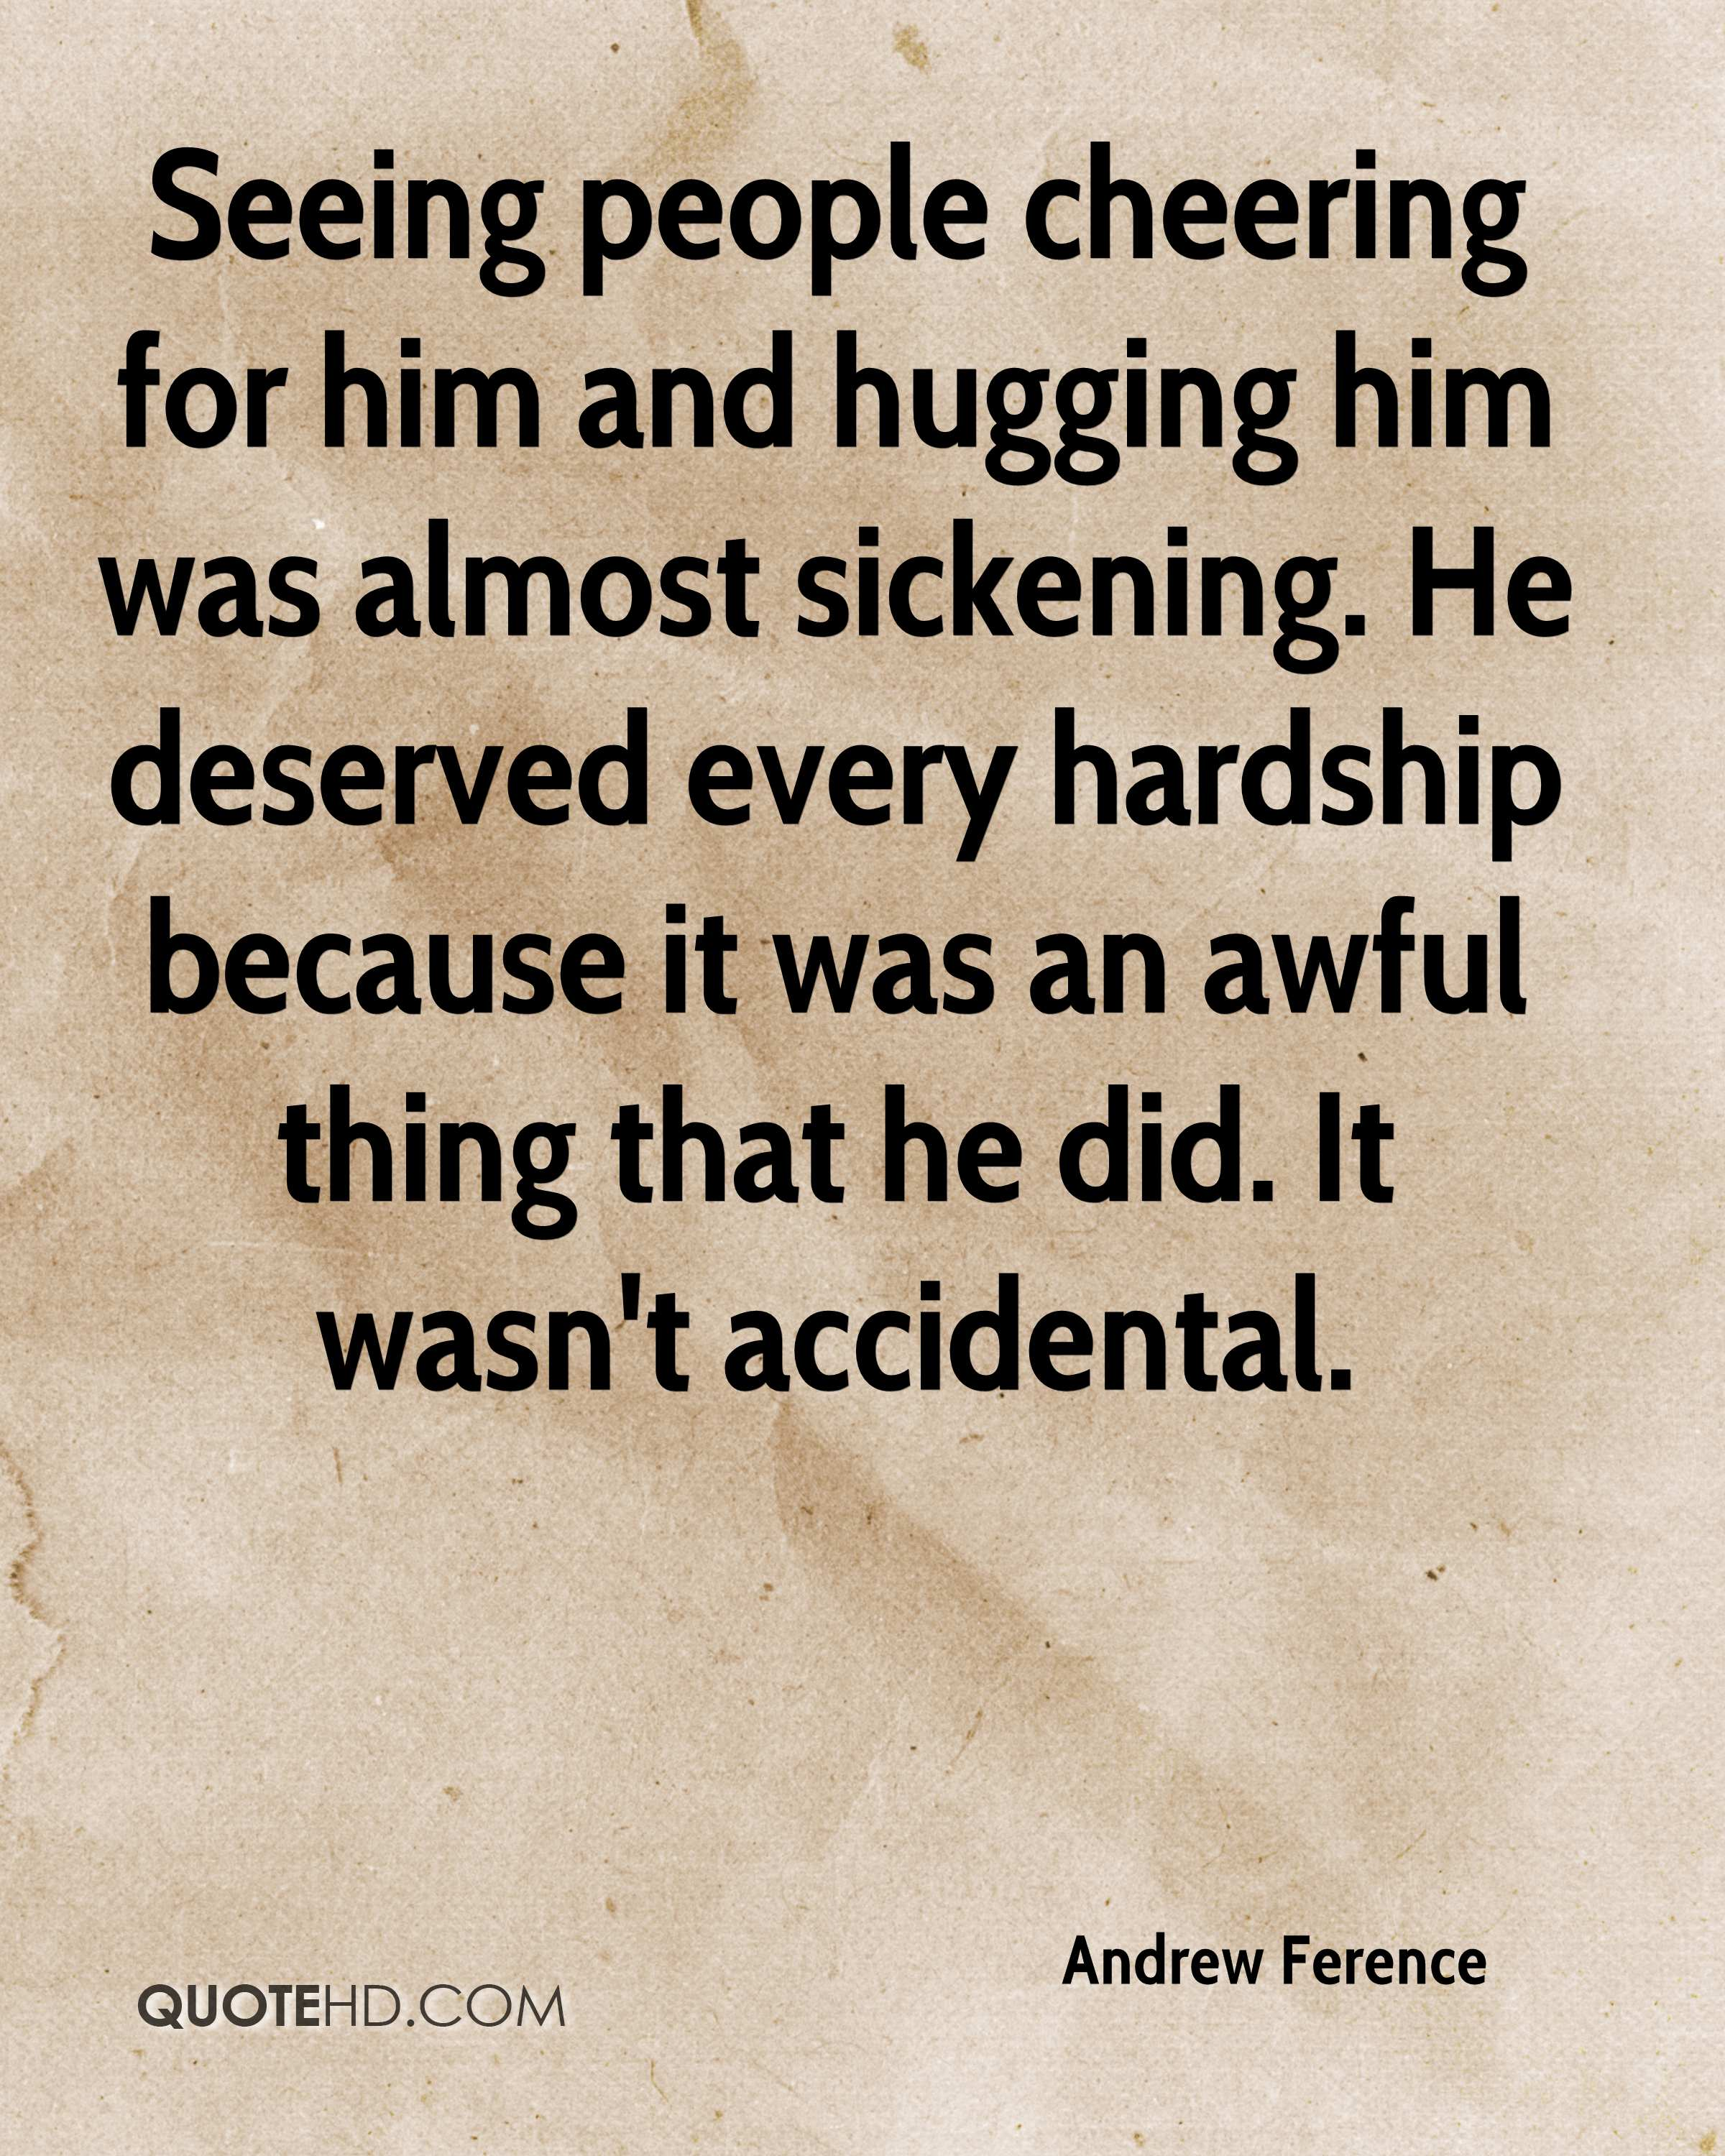 Seeing people cheering for him and hugging him was almost sickening. He deserved every hardship because it was an awful thing that he did. It wasn't accidental.